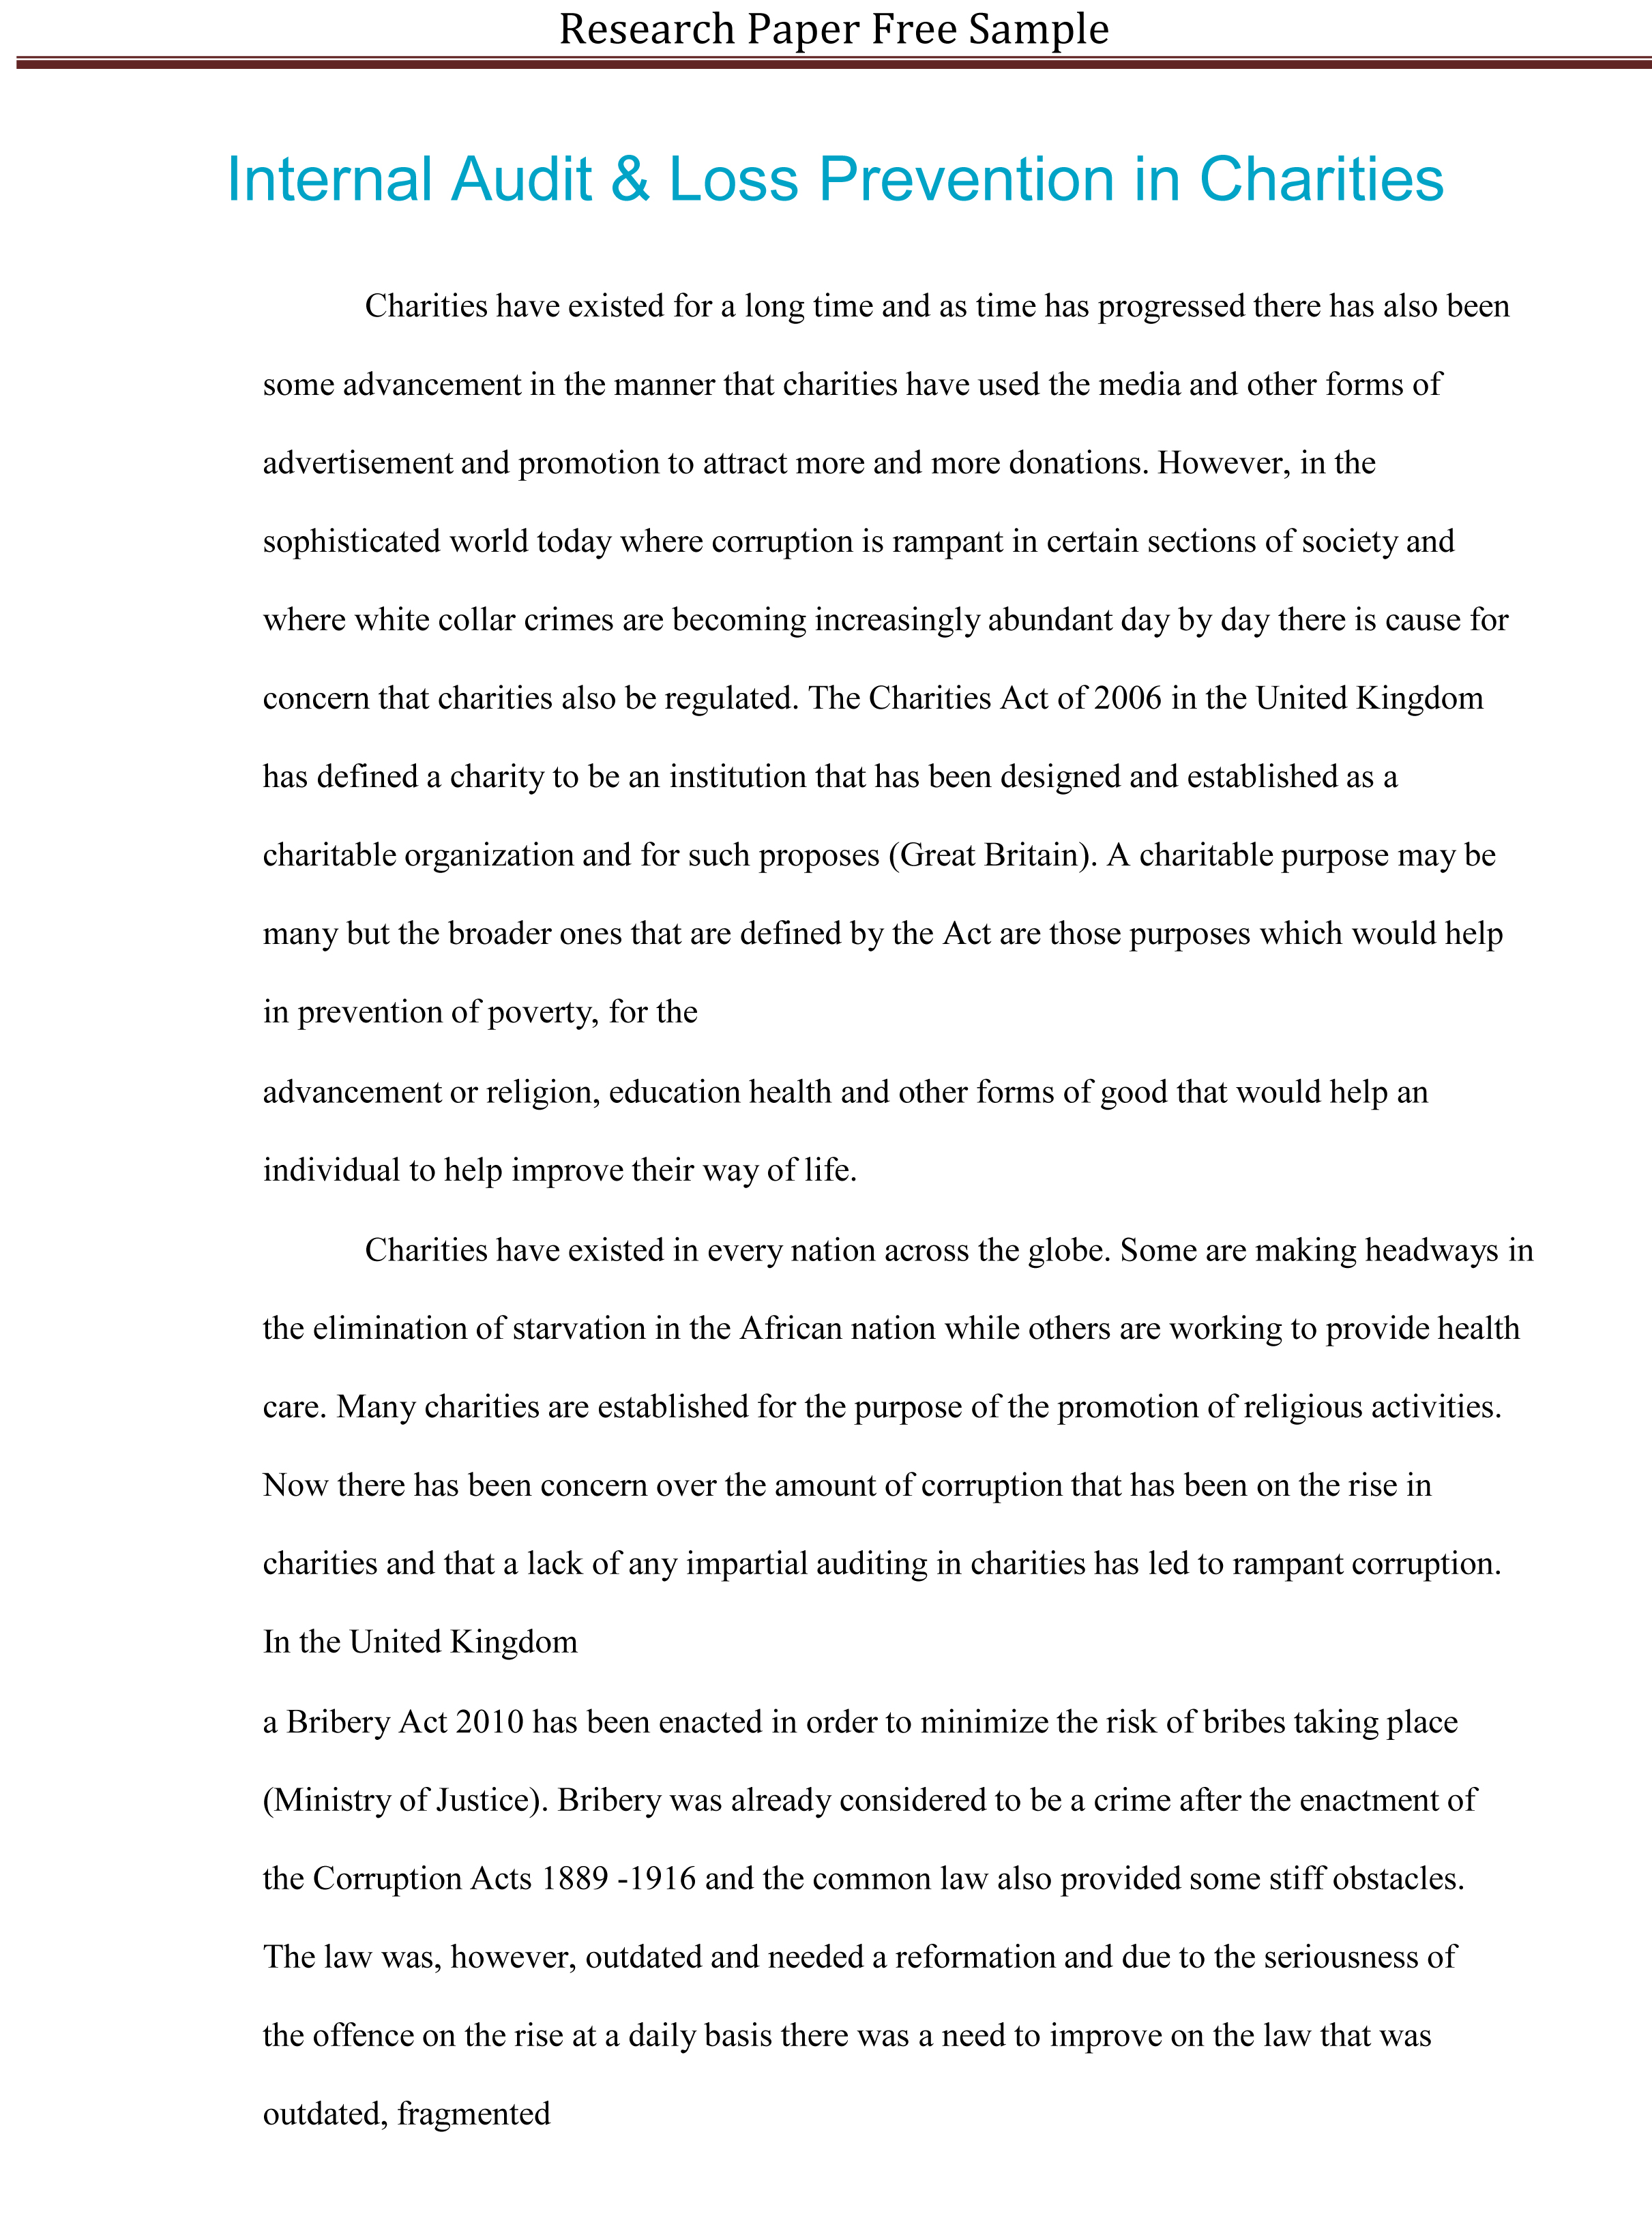 021 Research Paper Sample Essay Example High School Experience Dreaded Free Full